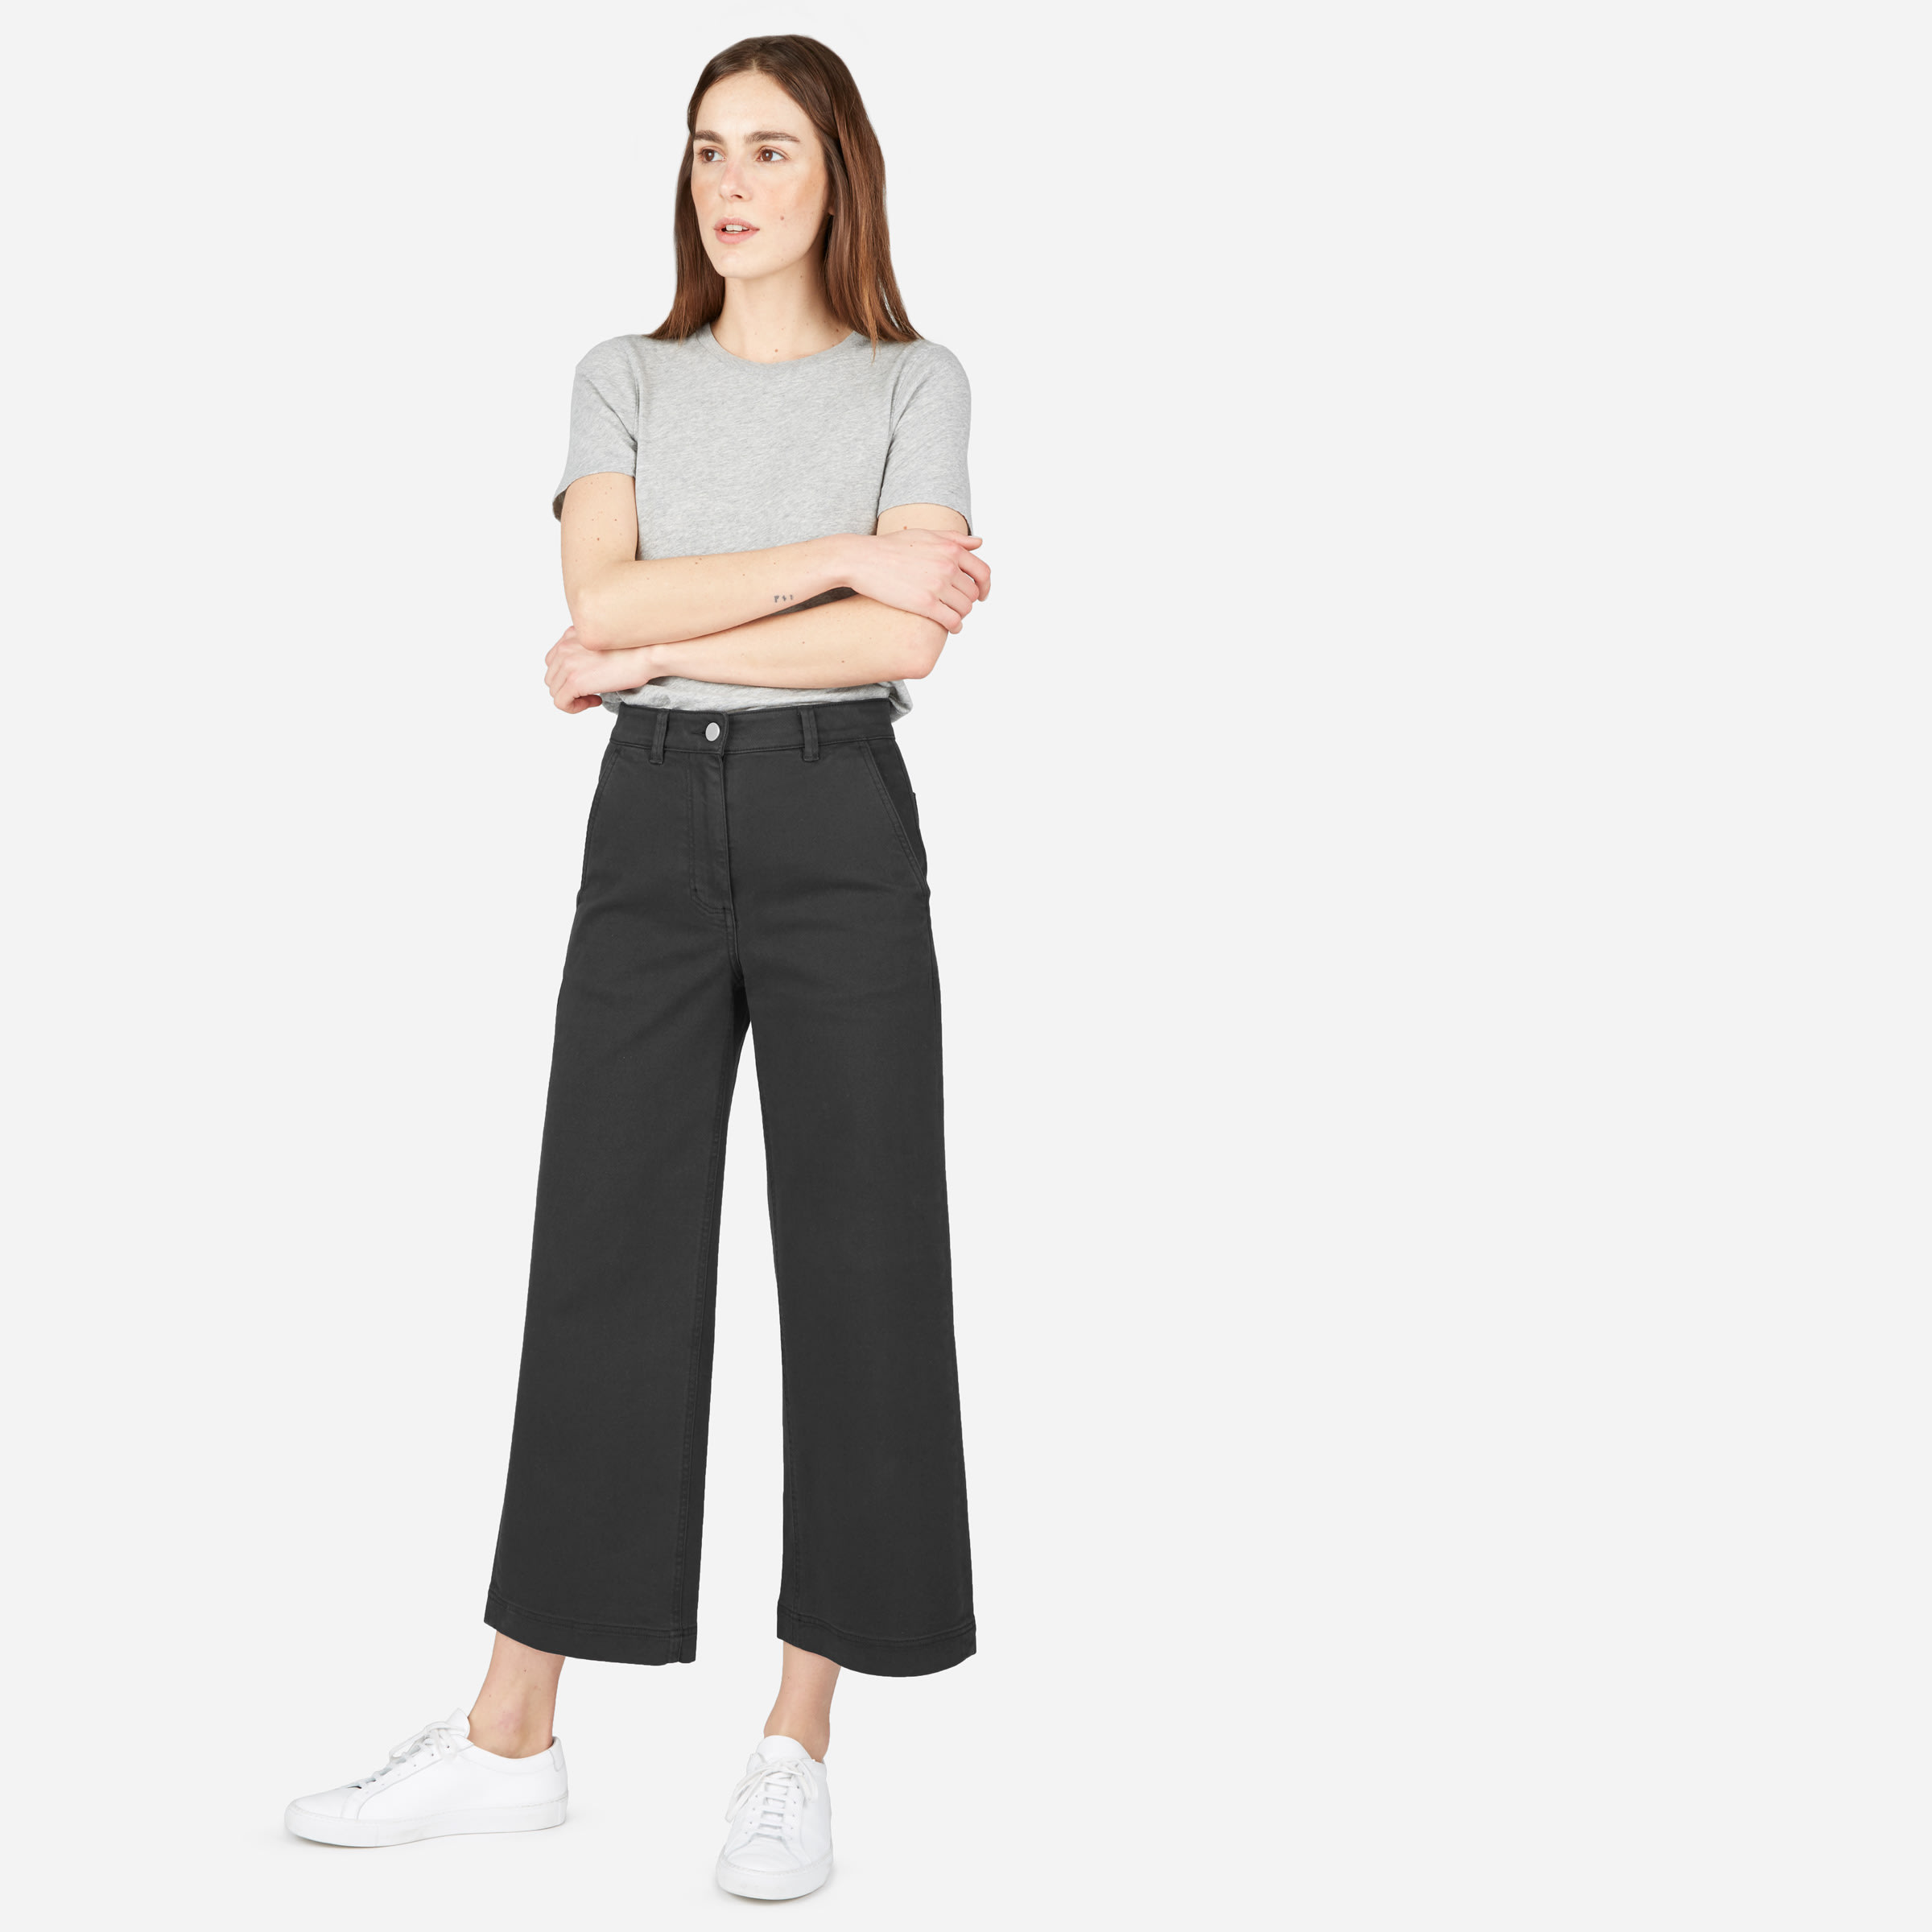 946387744f4 Women s Wide Leg Crop Pant